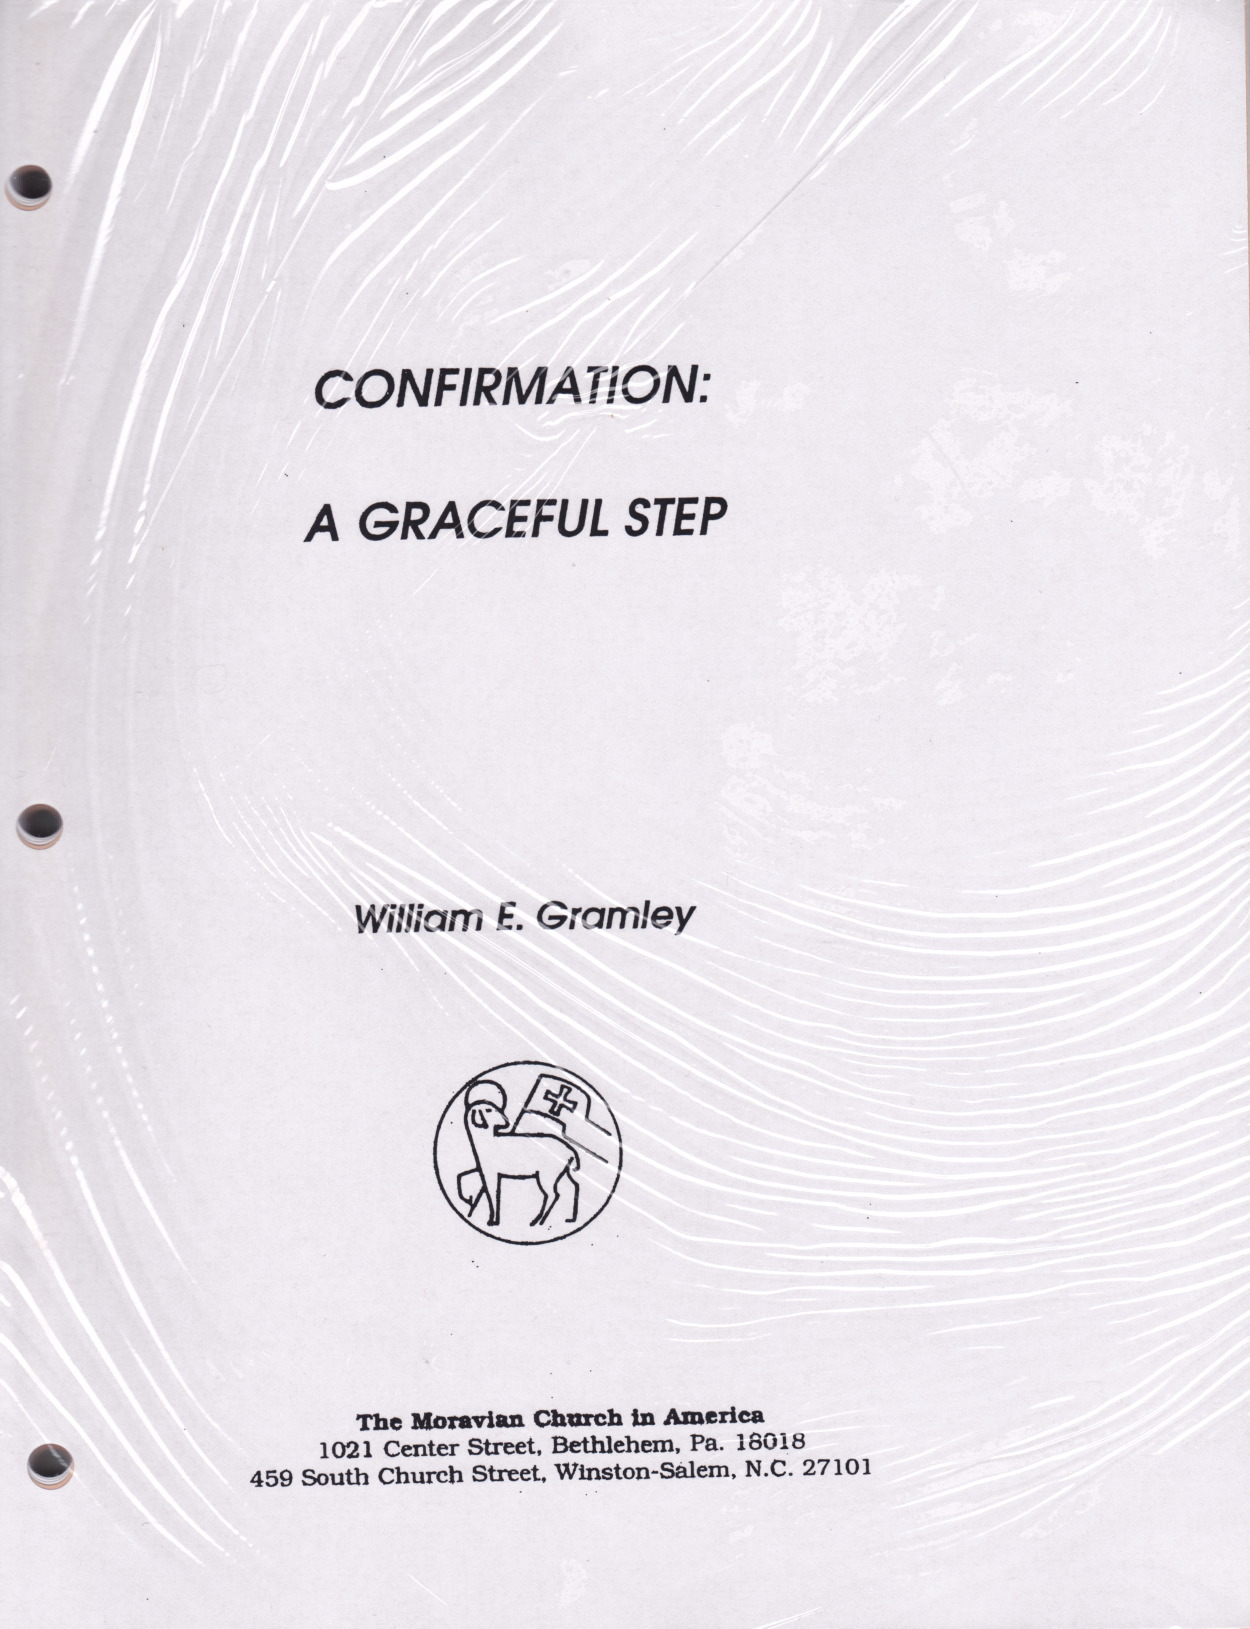 Confirmation: A Graceful Step